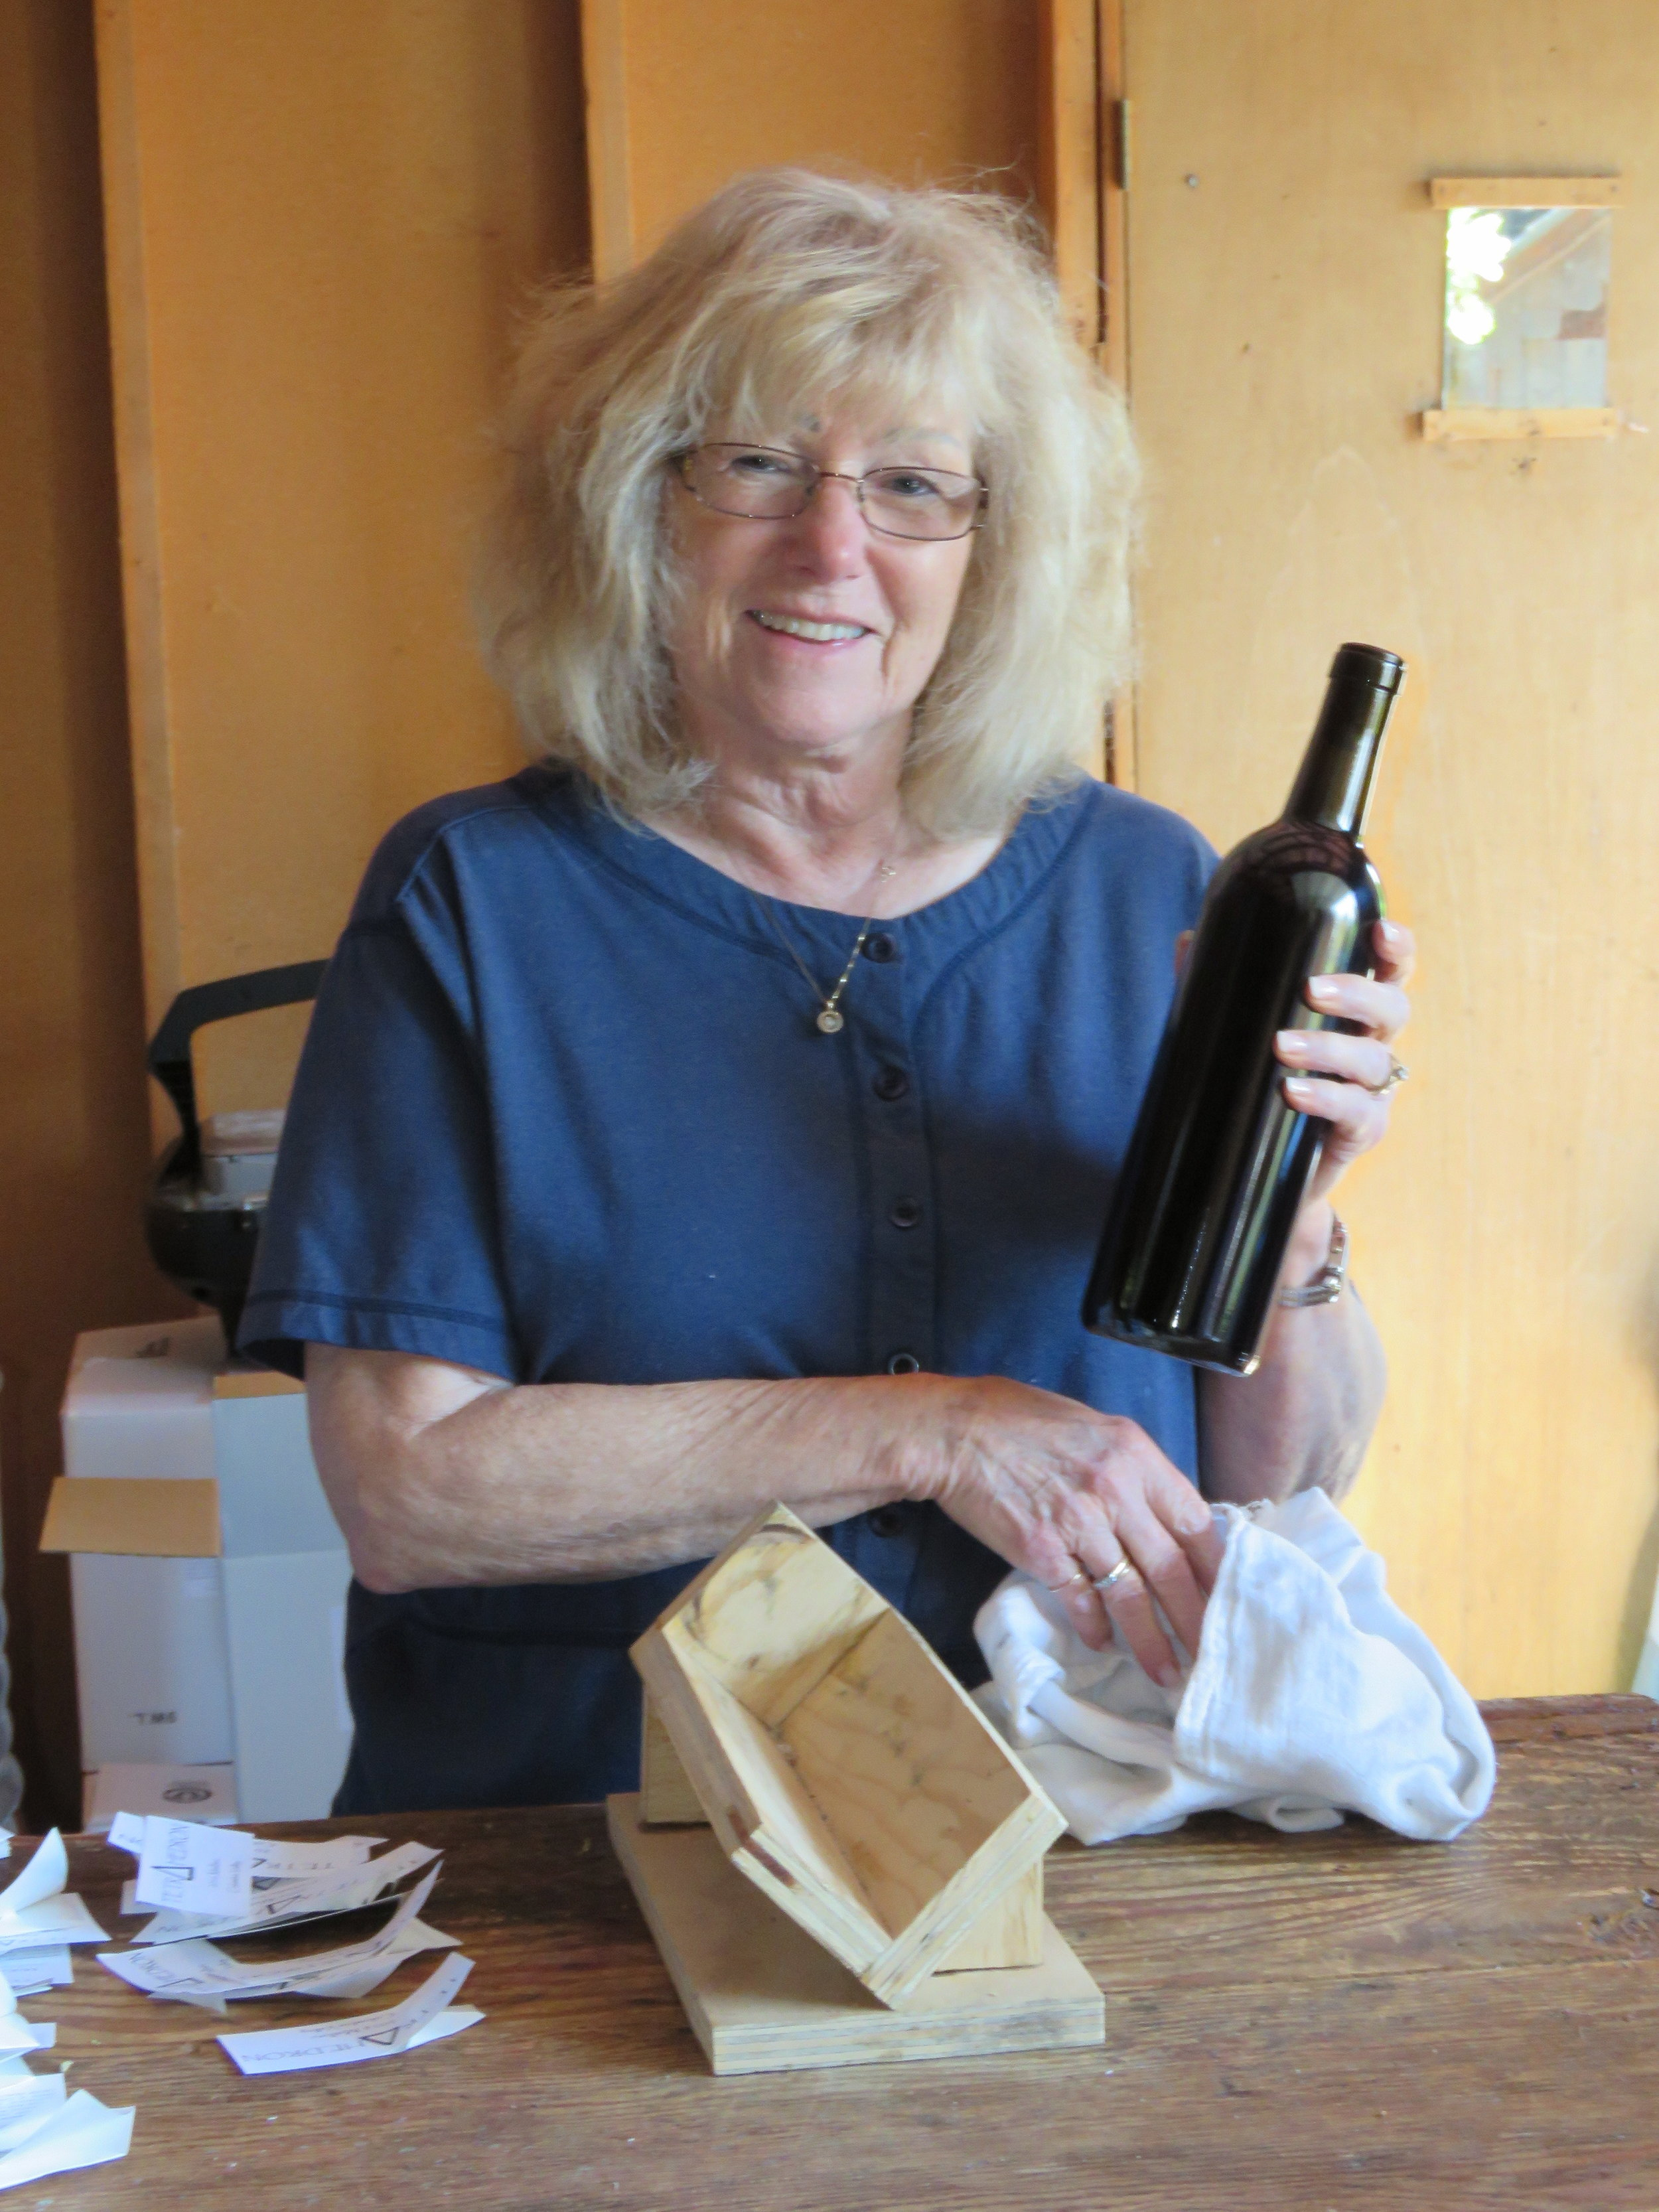 Bonnie wiping down a bottle before adding the wine labels